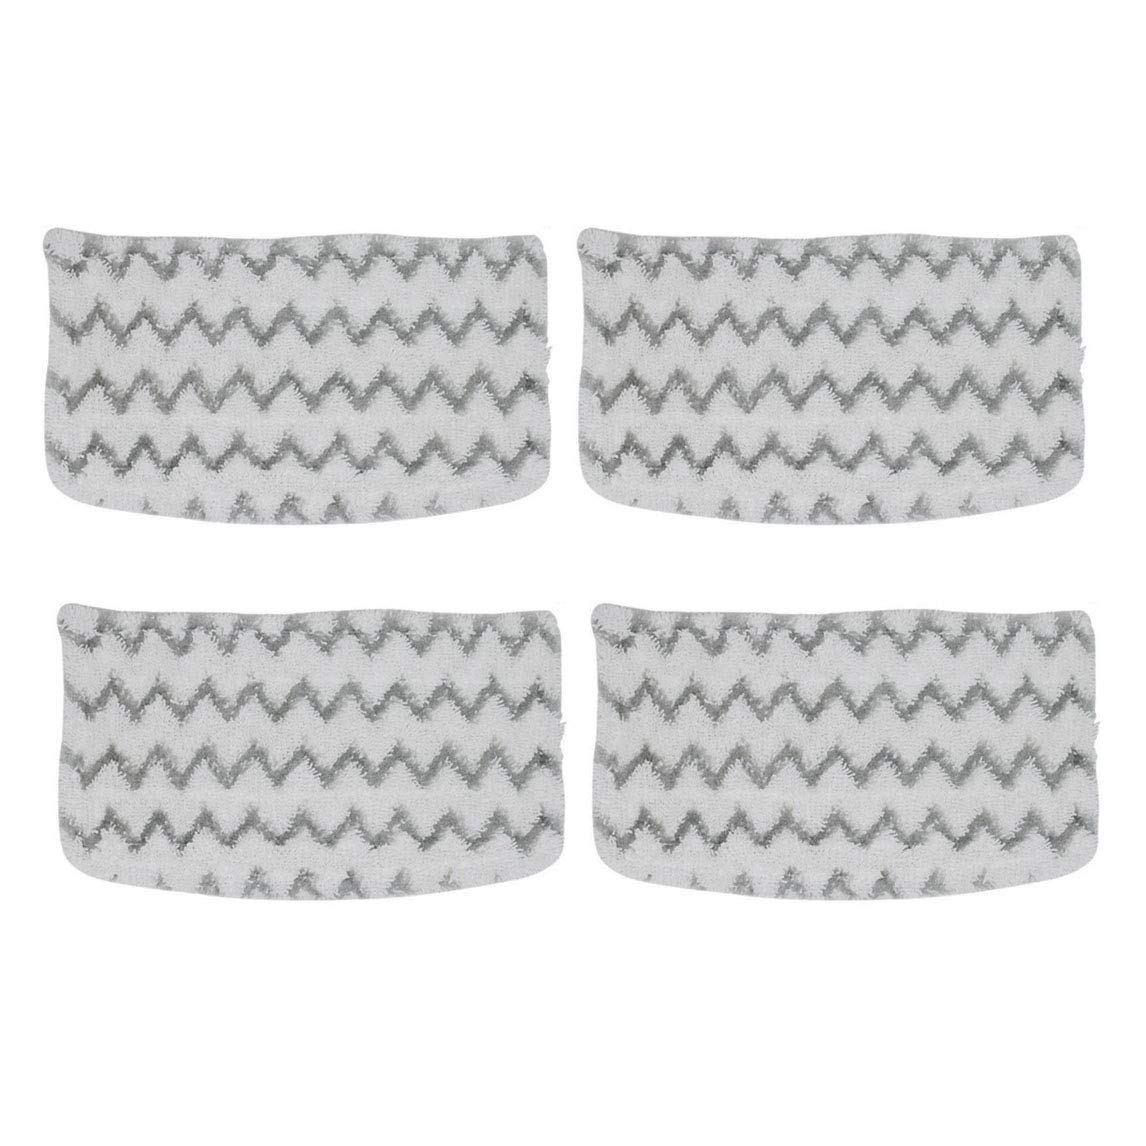 Steam Mop Pads Replacement for Shark S1000A Washable Microfiber Hard Floor Cleaning and Sanitizing Pads Compatiable with S1000 S1000C S1000WM S1001C Dirt Grip Pocket Pads 4 Pack